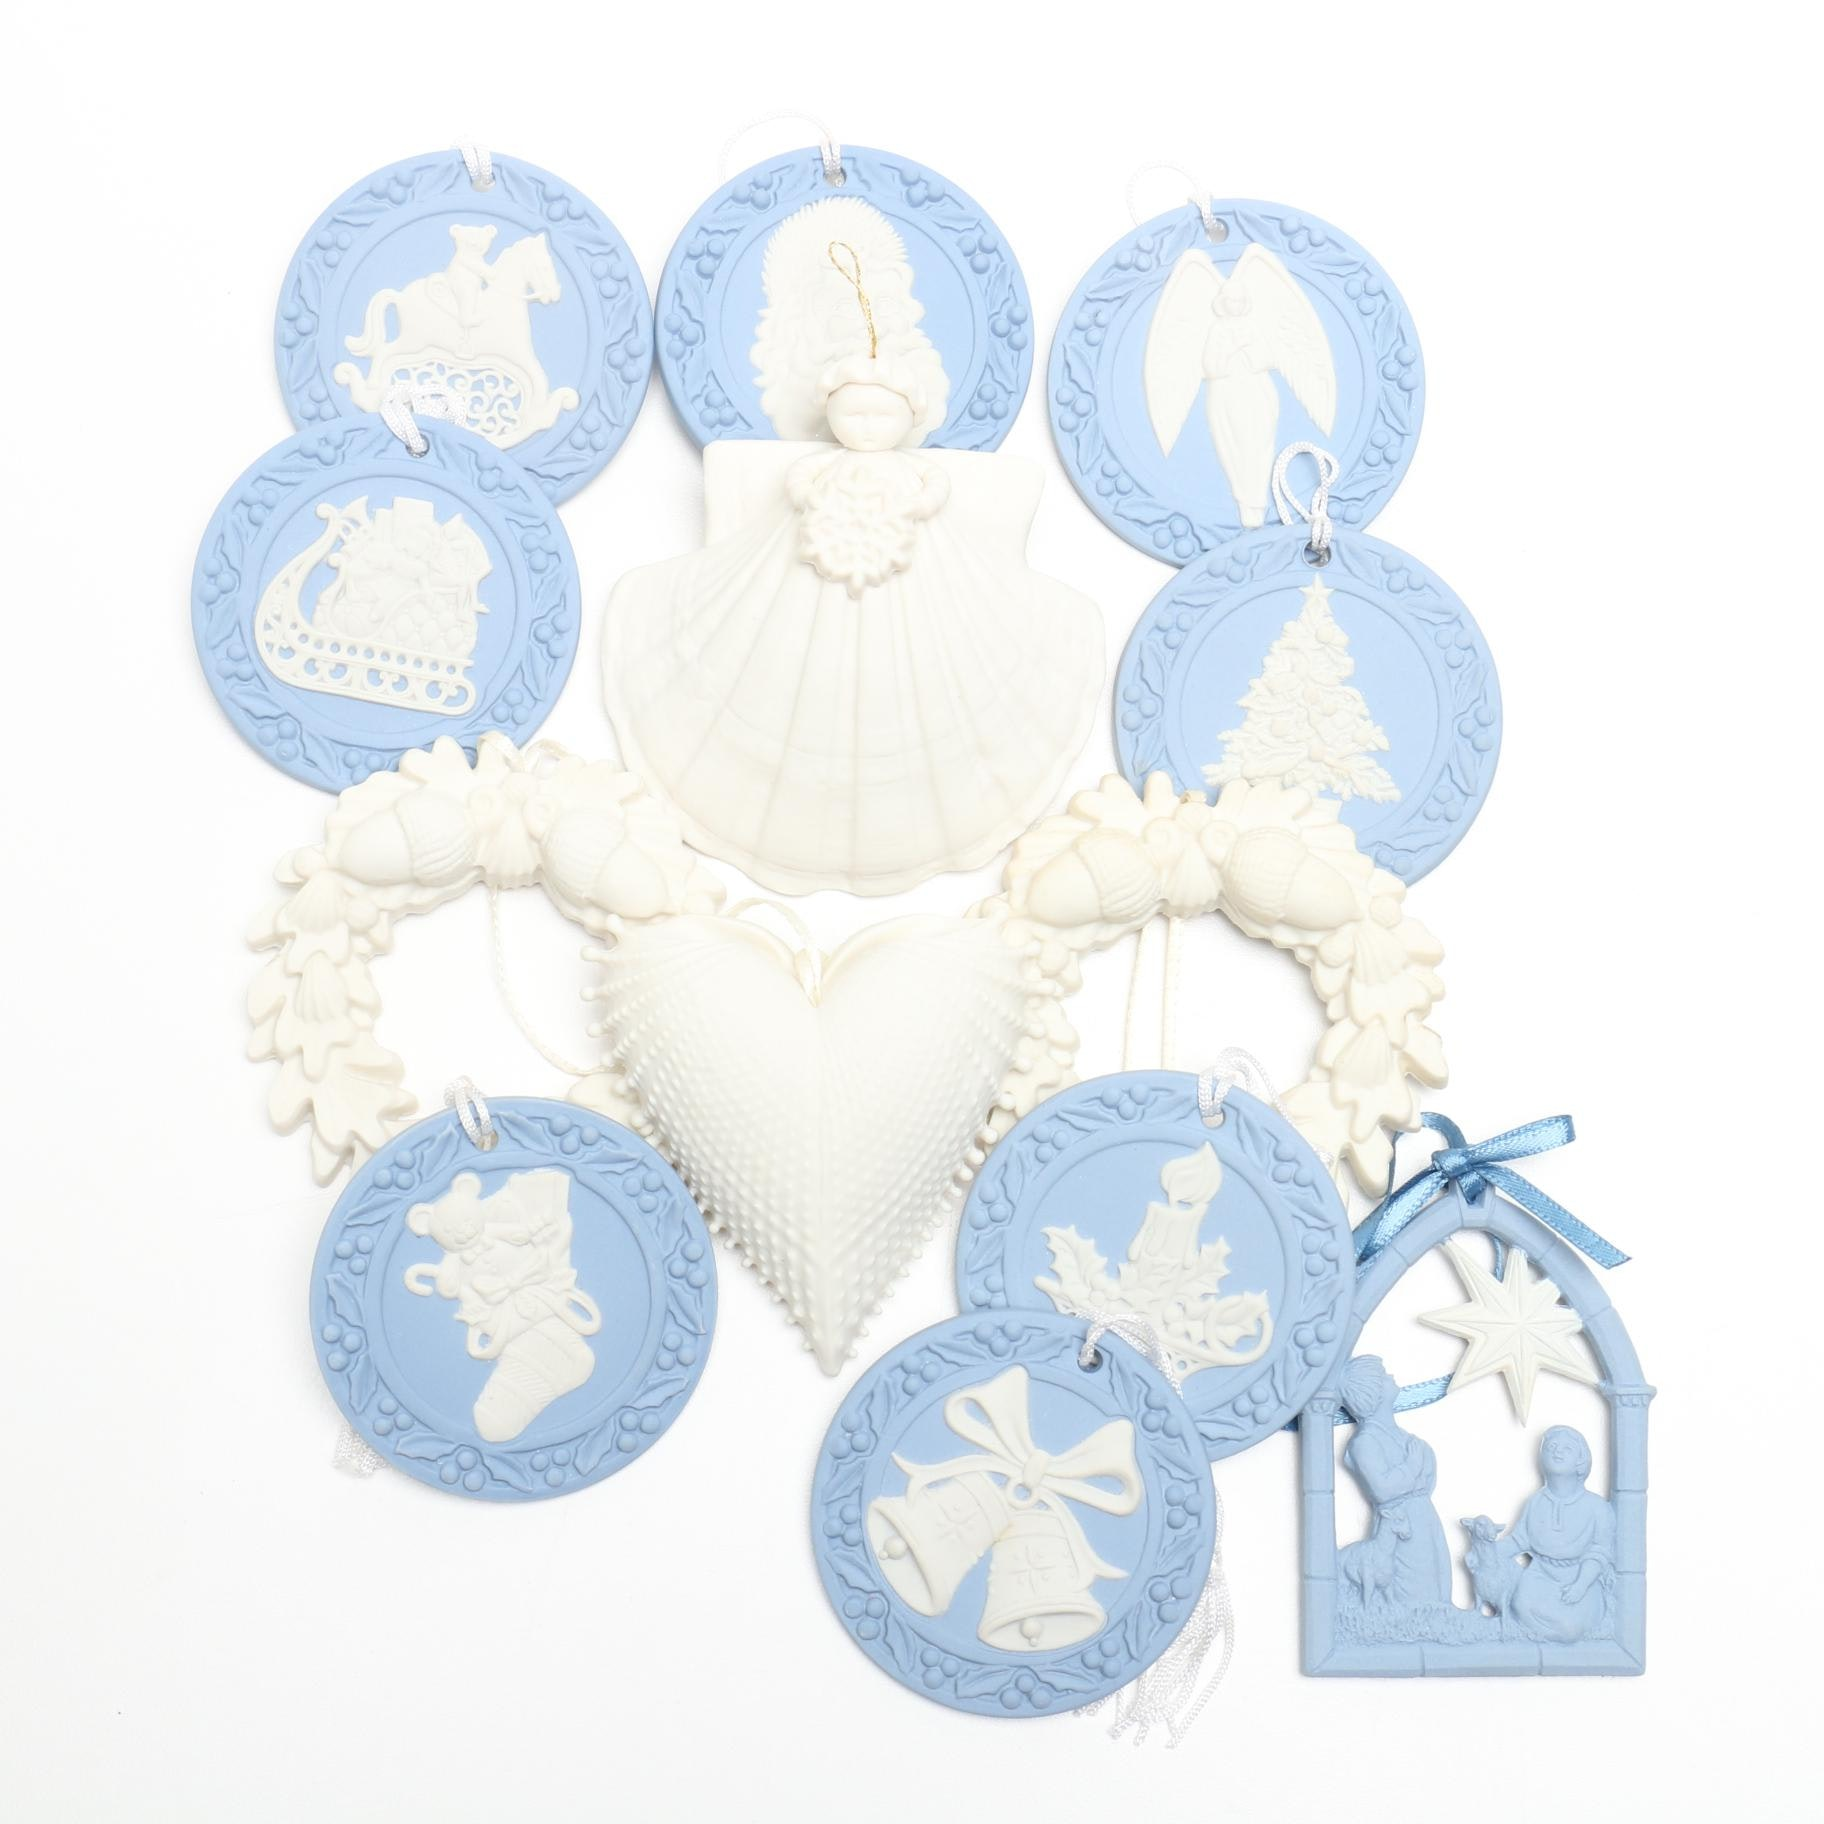 Wedgwood and Margaret Furlong Christmas Ornaments